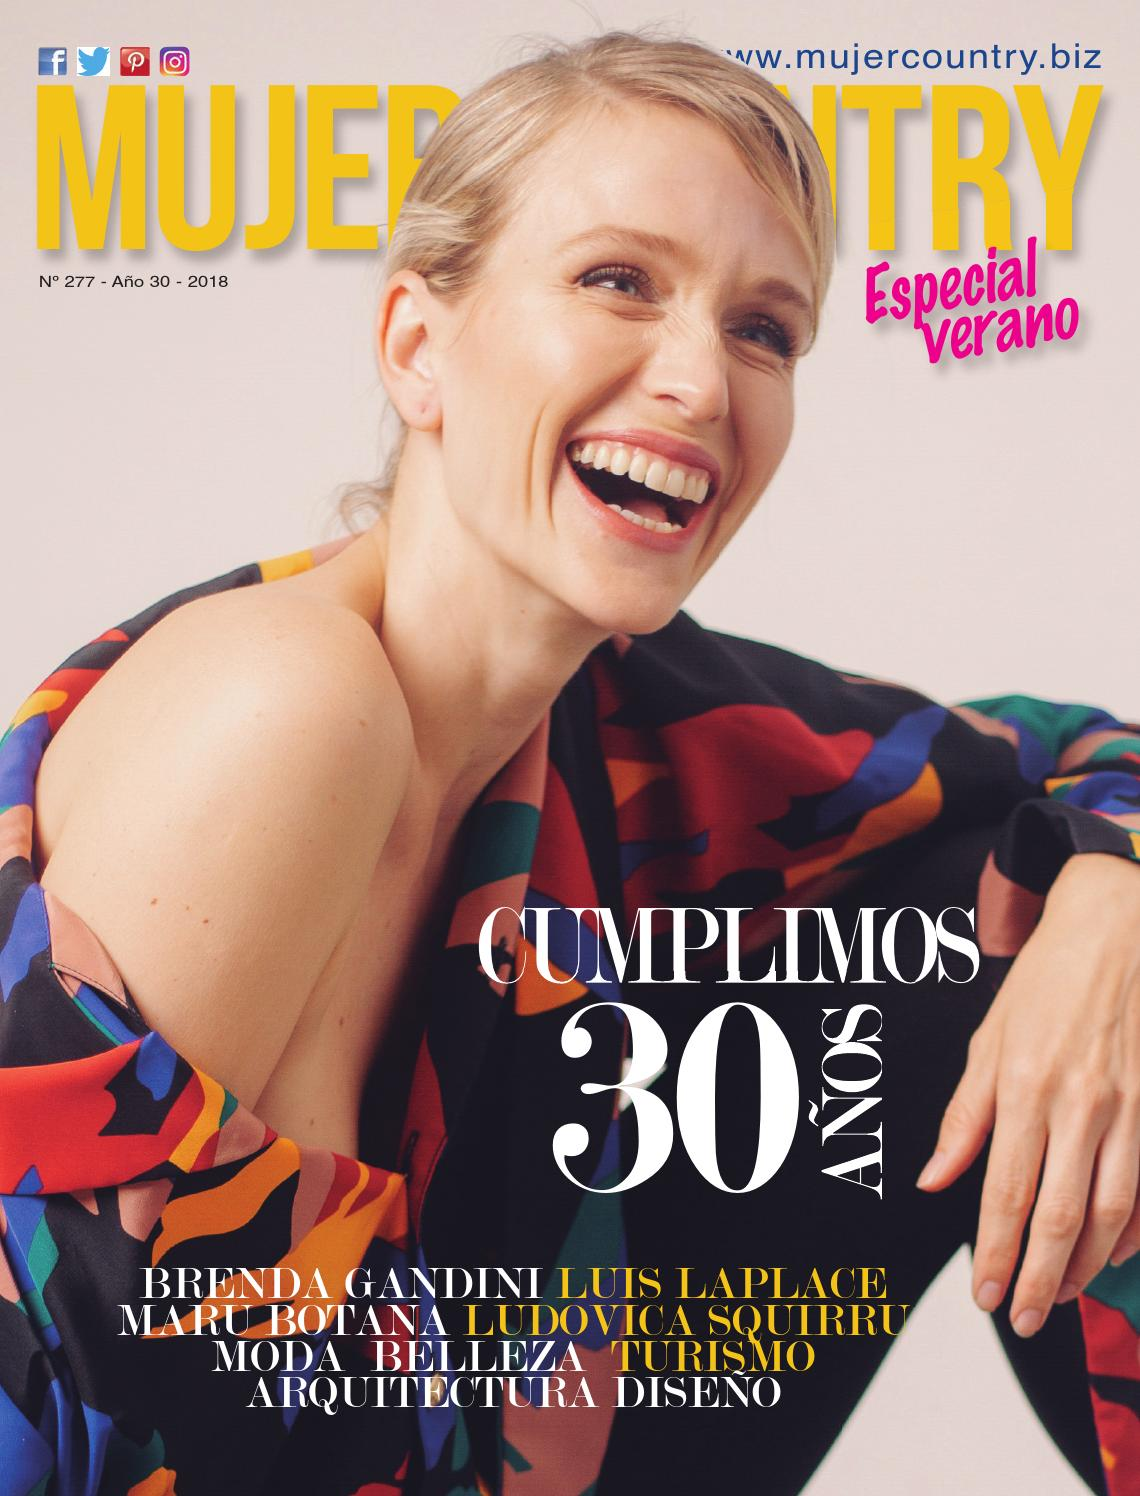 905f0c9d5967 Revista Mujer Country Nº 277 - Diciembre 2018 by MujerCountry ...